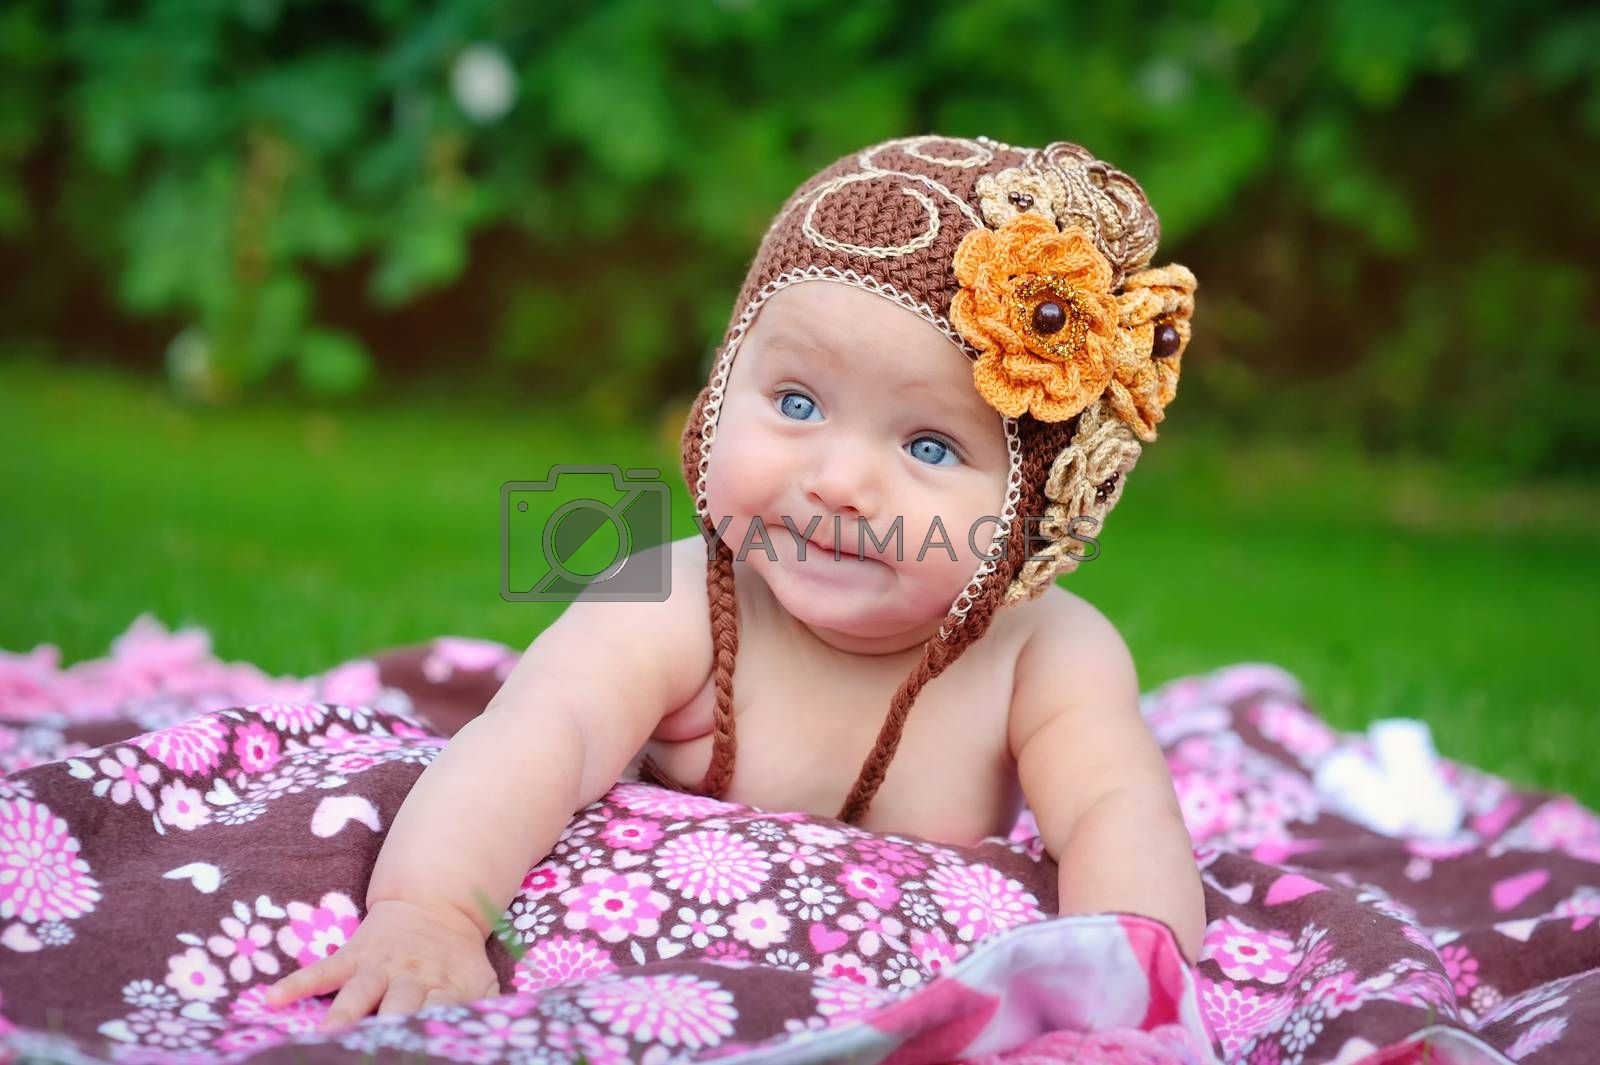 Cute baby crawling outdoors in brown knitted cap